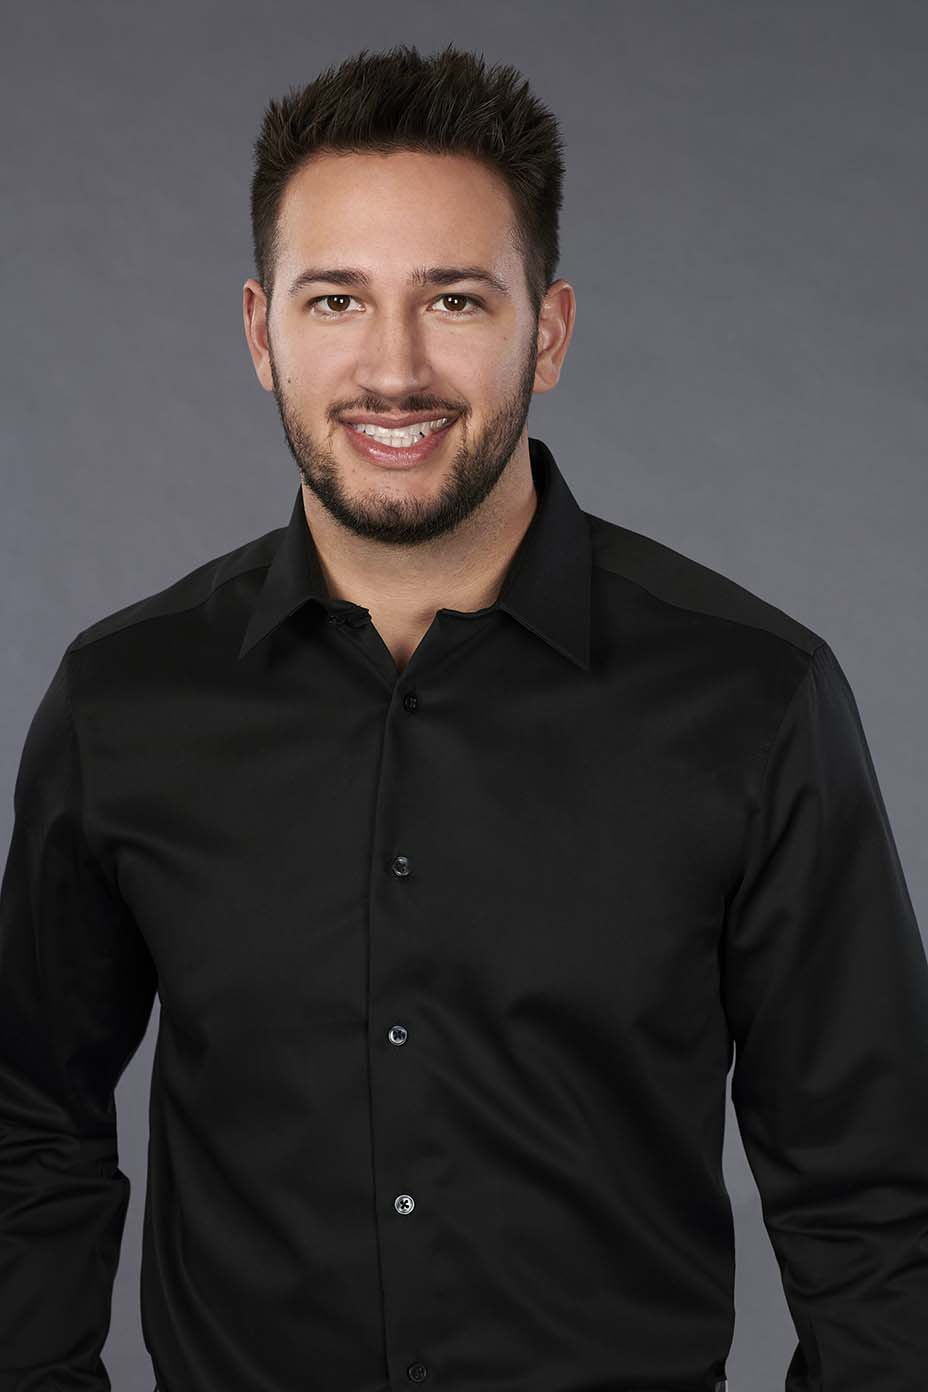 Scott, 28 - A software sales executive from Chicago, ILScott is a sales executive from the Windy City. When he's not closing deals, he likes to day drink with his buds on rooftops and watch sports. Scott says that he's a great catch because